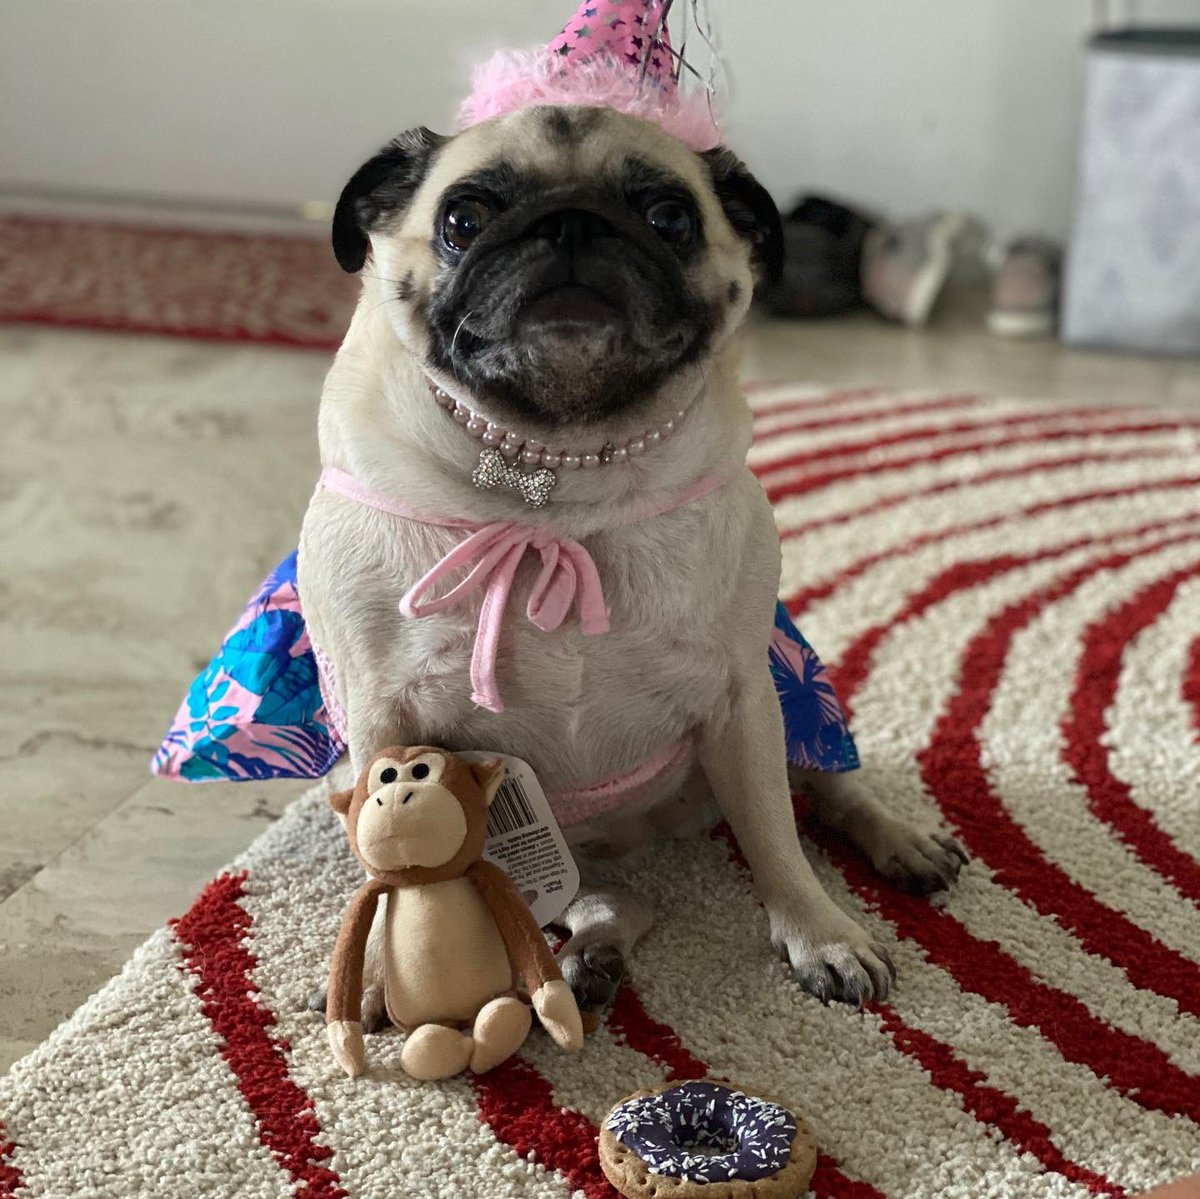 Aloha friends!!! It was my birthday yesterday. I'm 5 years old  woohoo!!! #puglife #dogsofinstagram #dogsoftwitter #pugs #happybarkday<br>http://pic.twitter.com/snDiN0OEUd